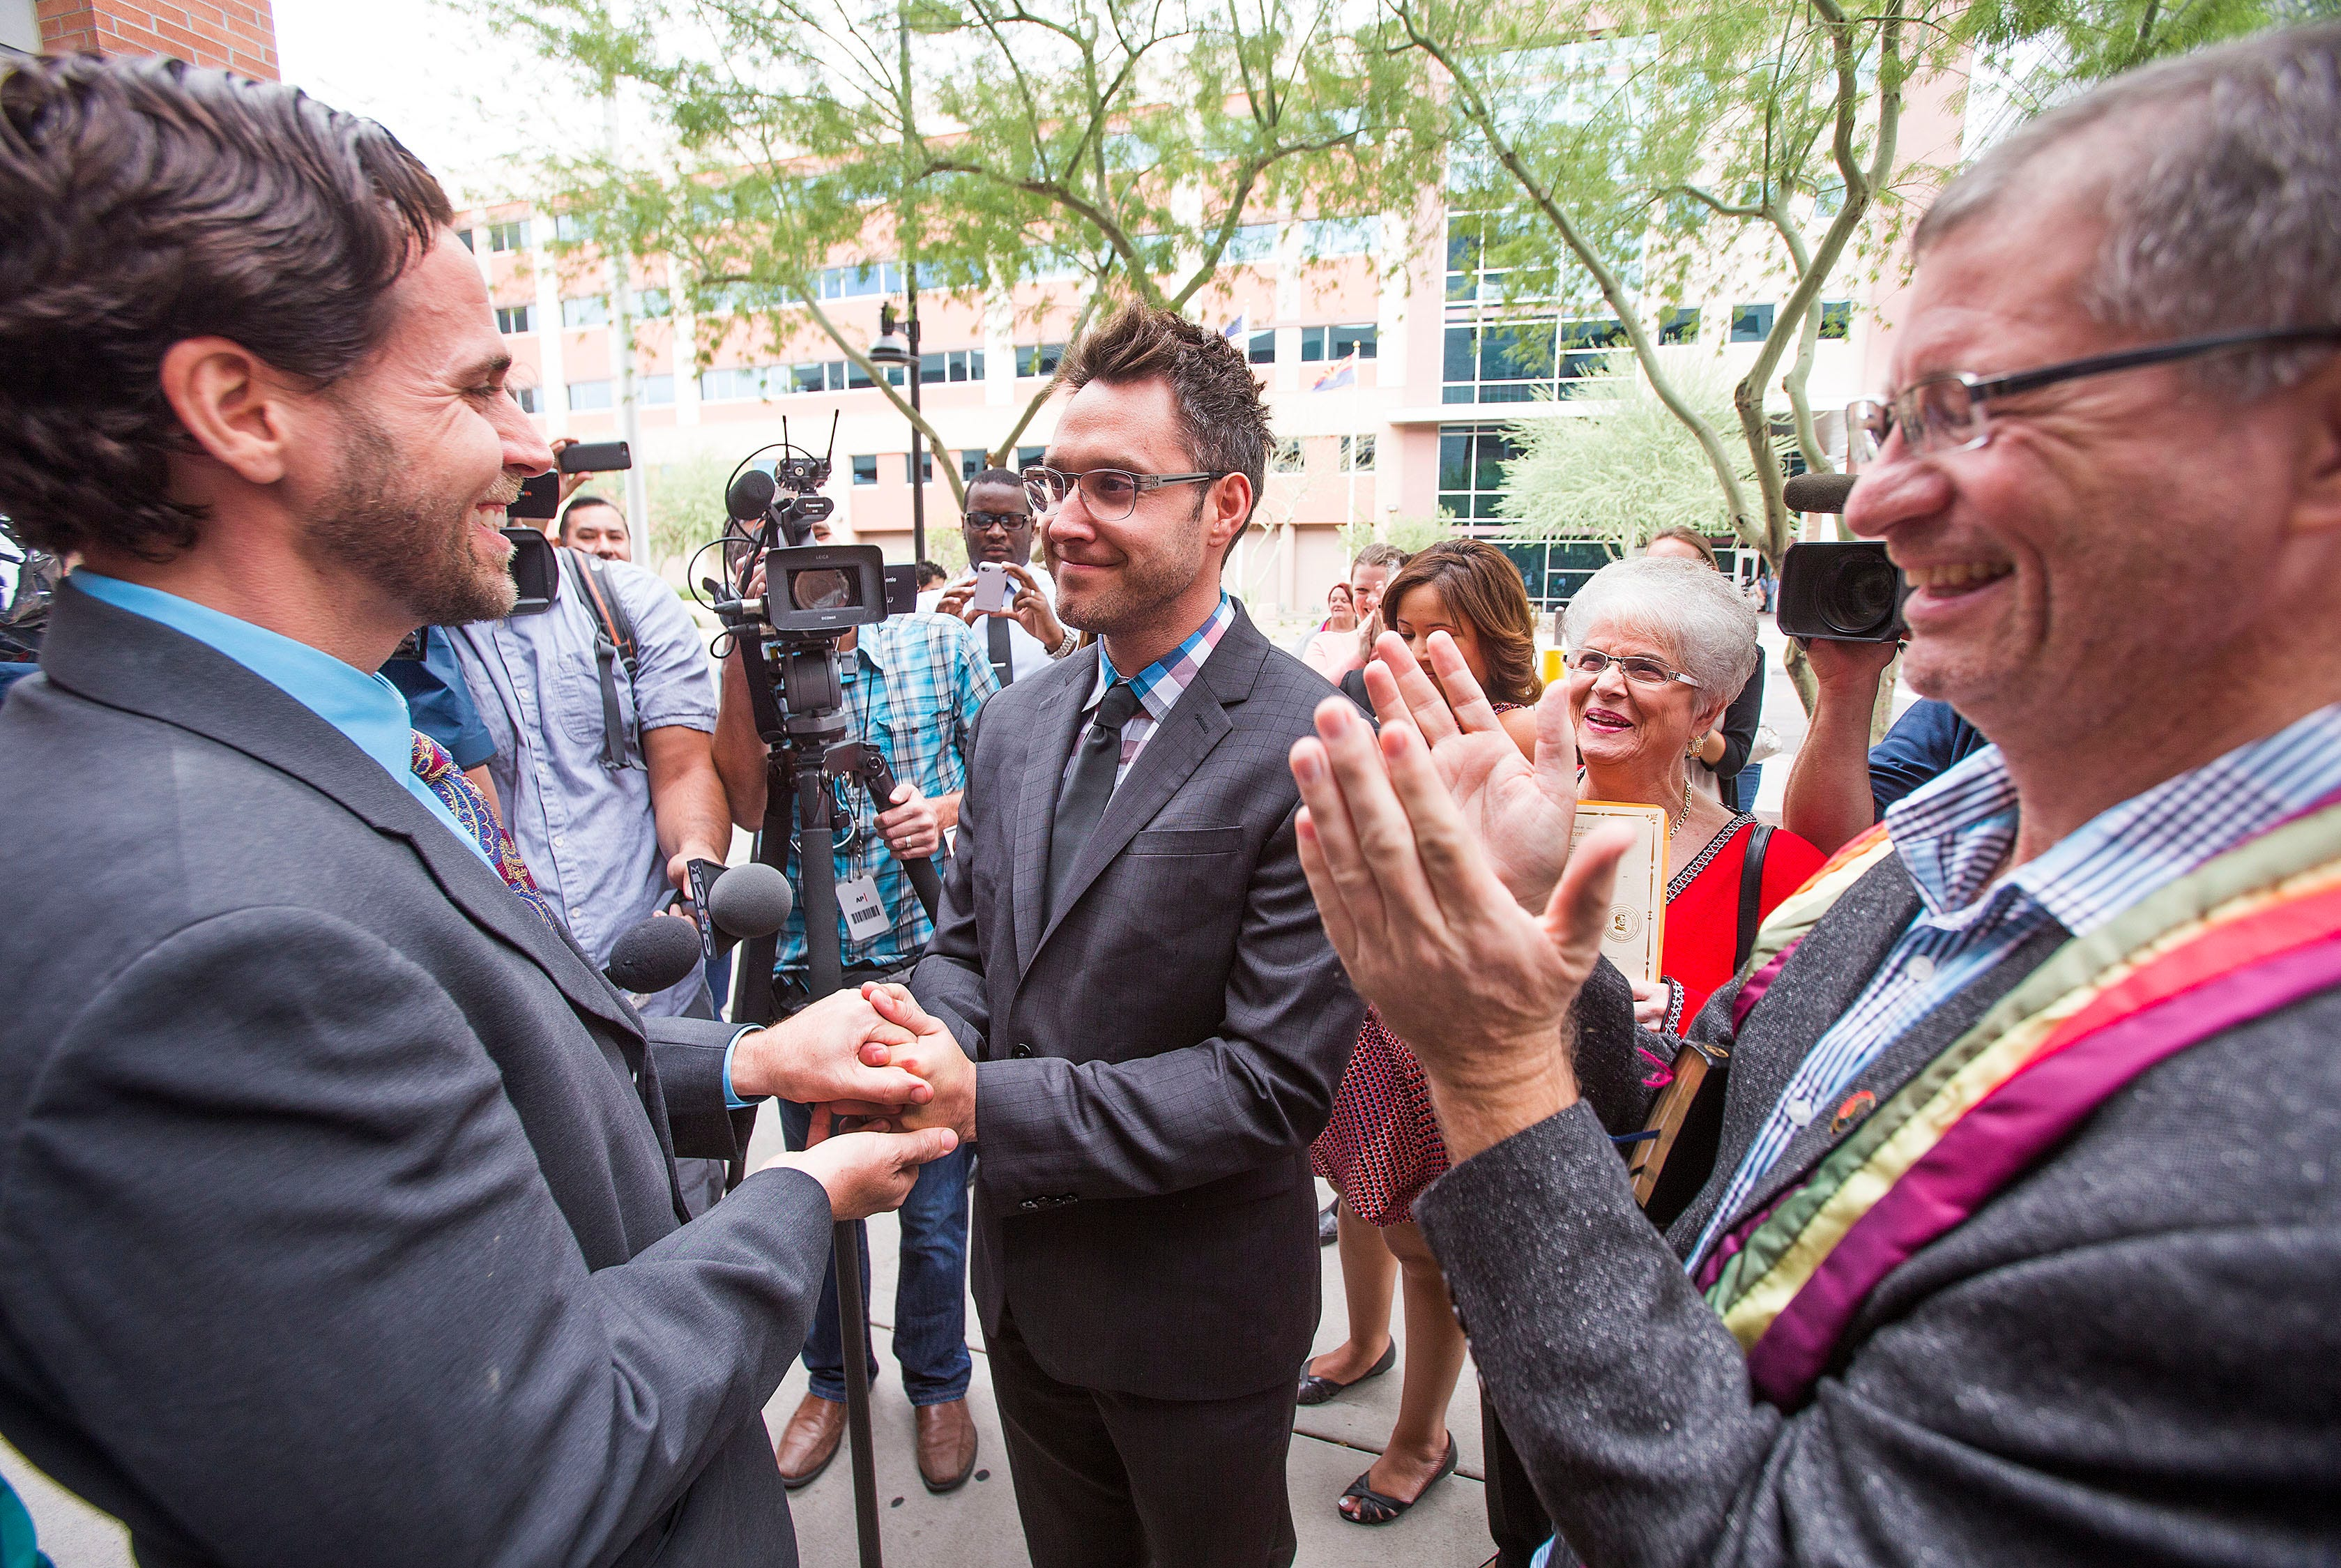 Same sex marriage in arizona pic 45